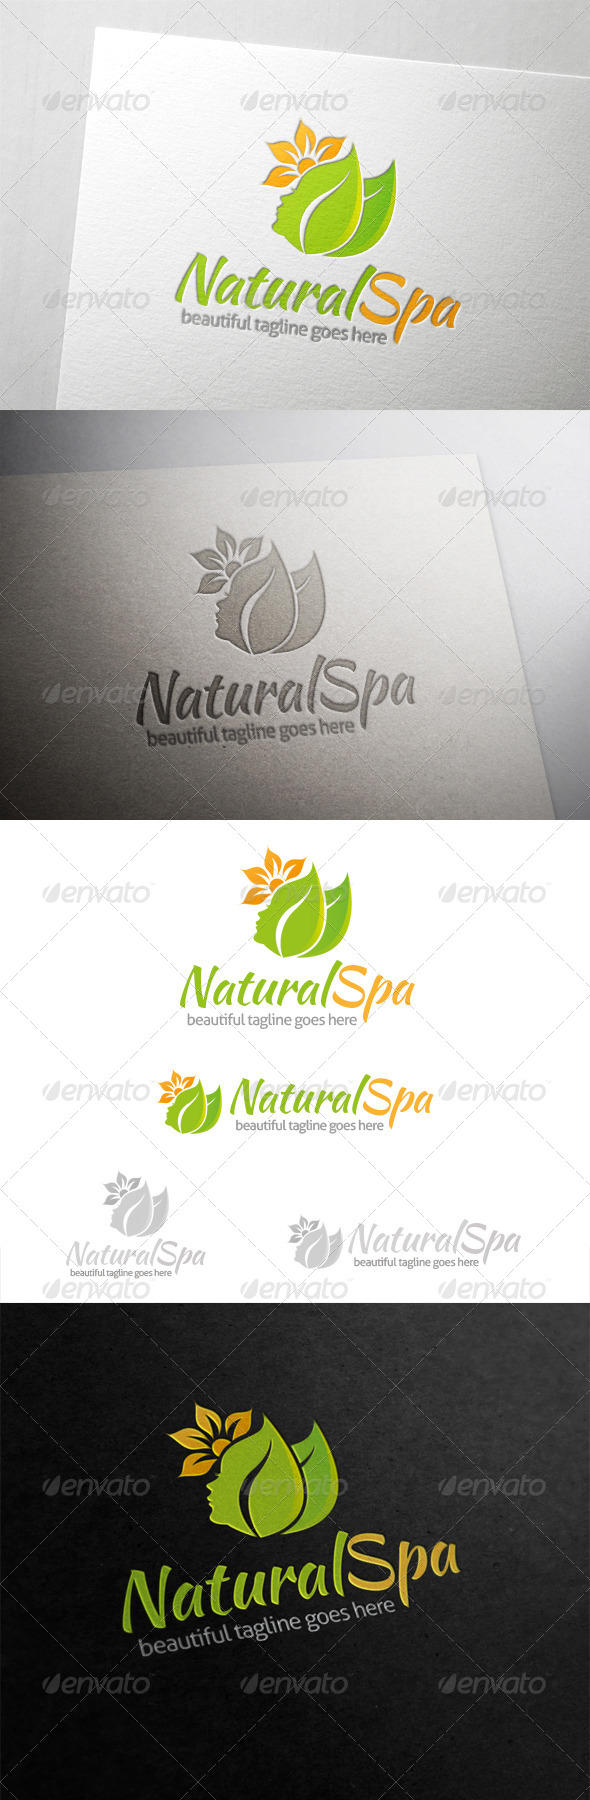 Natural Spa Logo - Nature Logo Templates